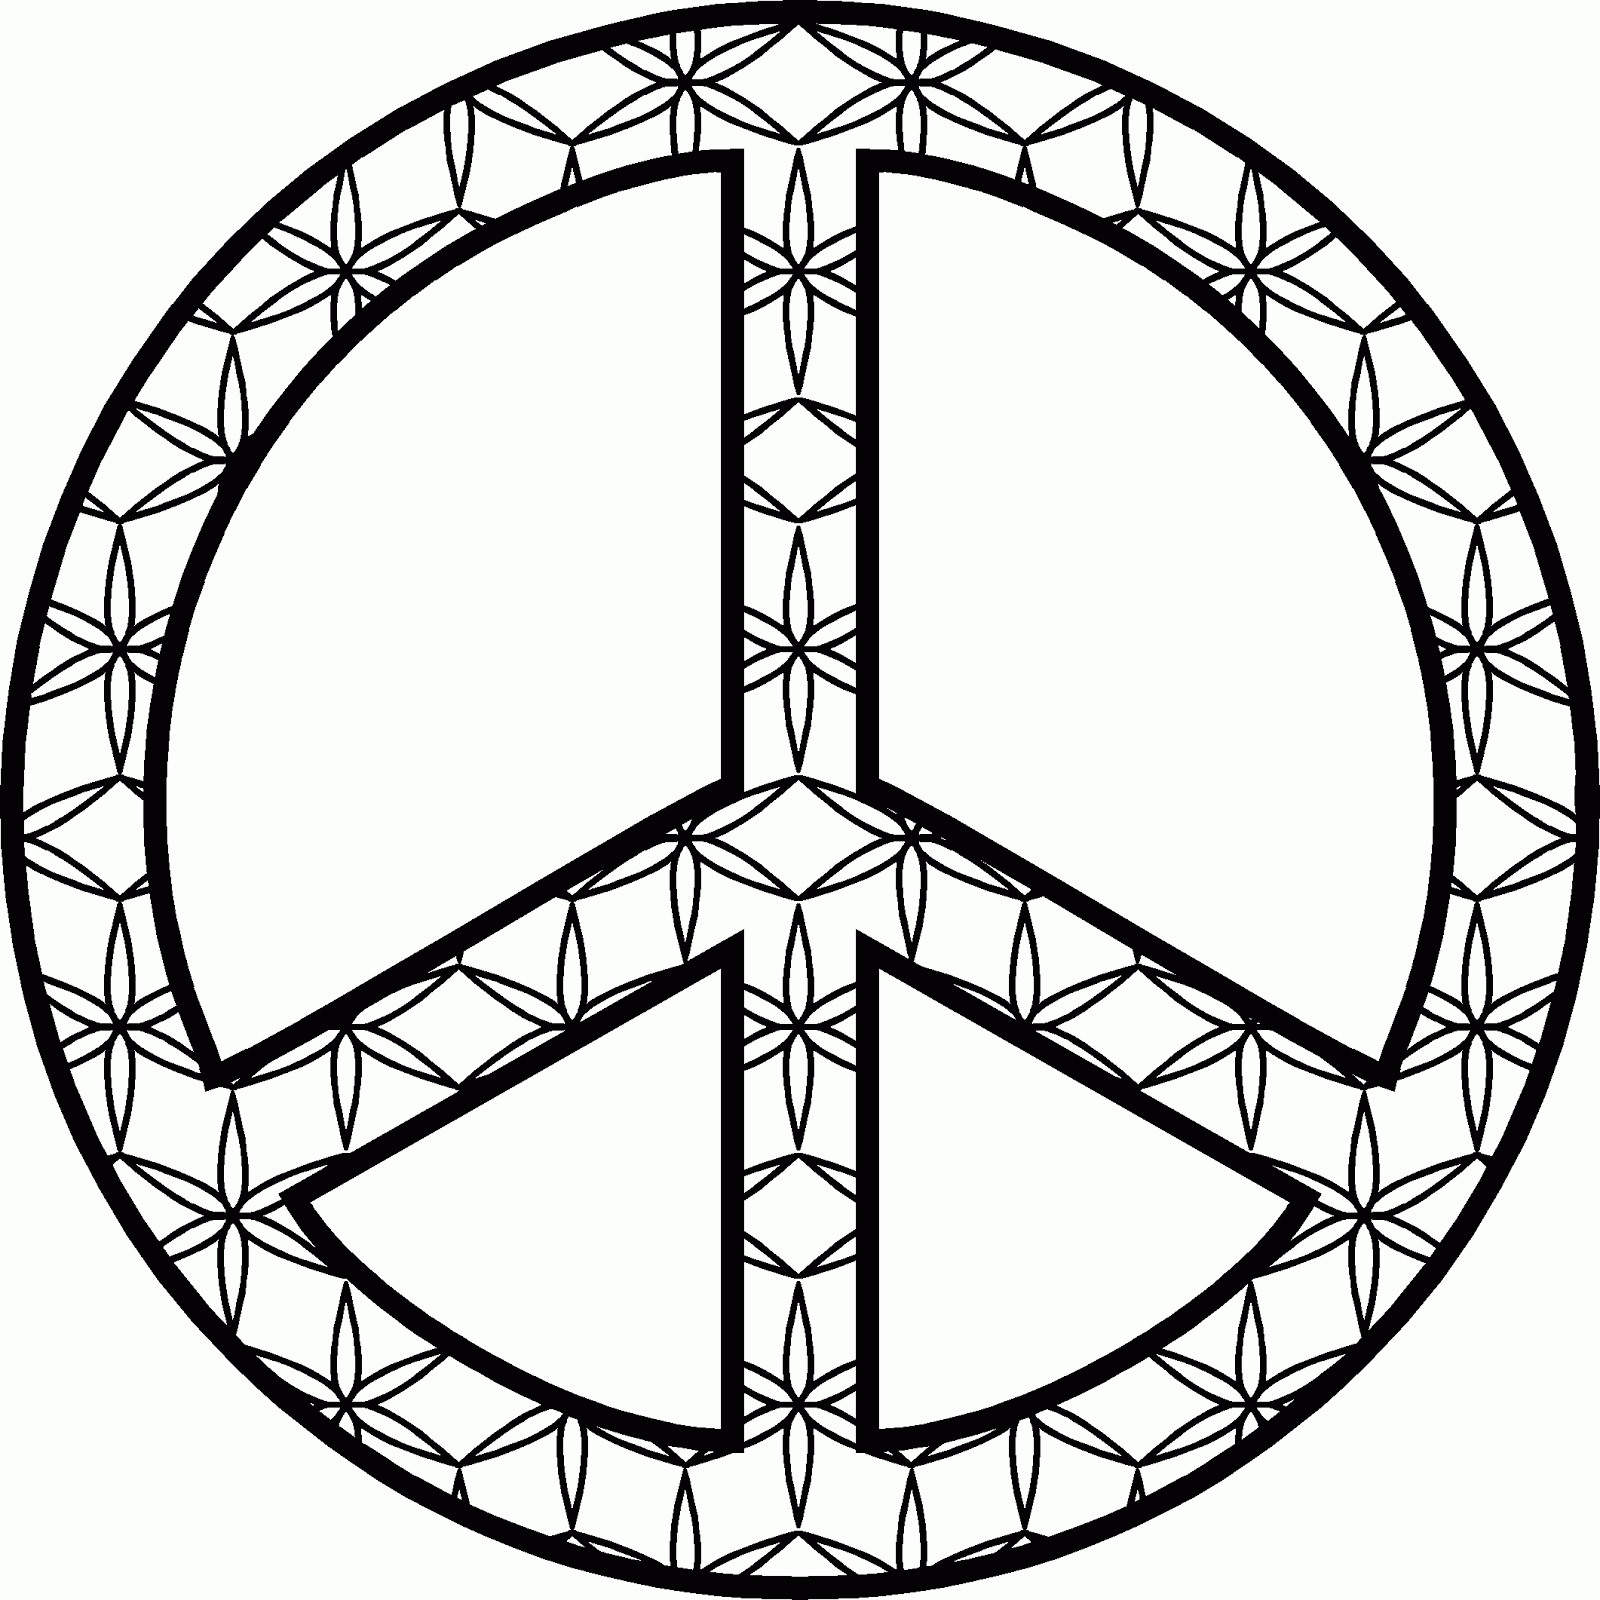 1600x1600 Peace Sign Coloring Pages Luxury Free Coloring Pages Of Peace Sign